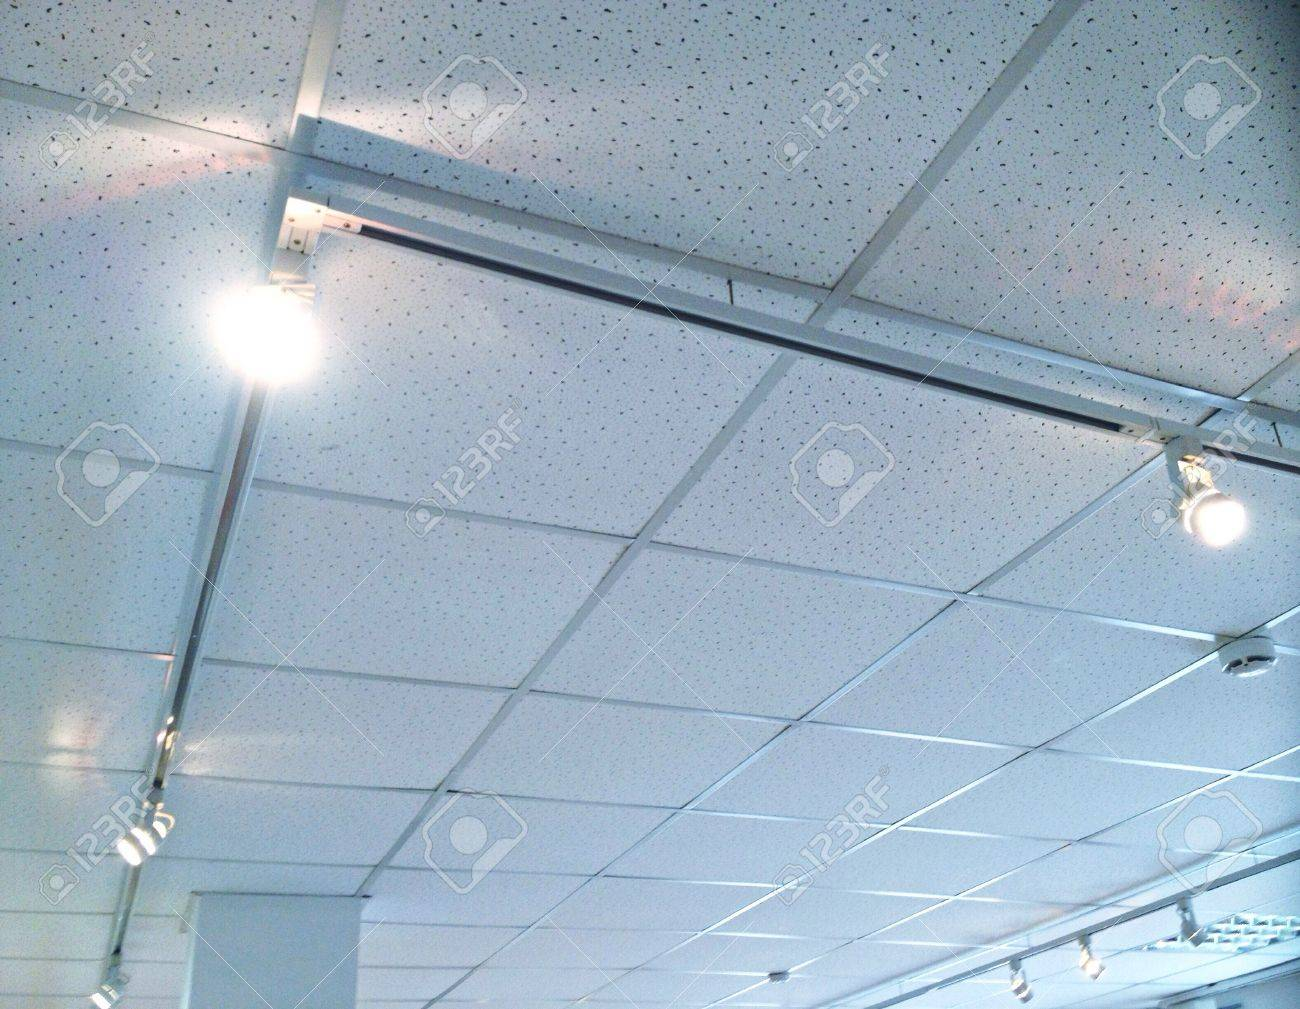 Accent lighting recessed white track on ceiling above contemporary art exhibition Stock Photo - 29776573 & Accent Lighting Recessed White Track On Ceiling Above Contemporary ...